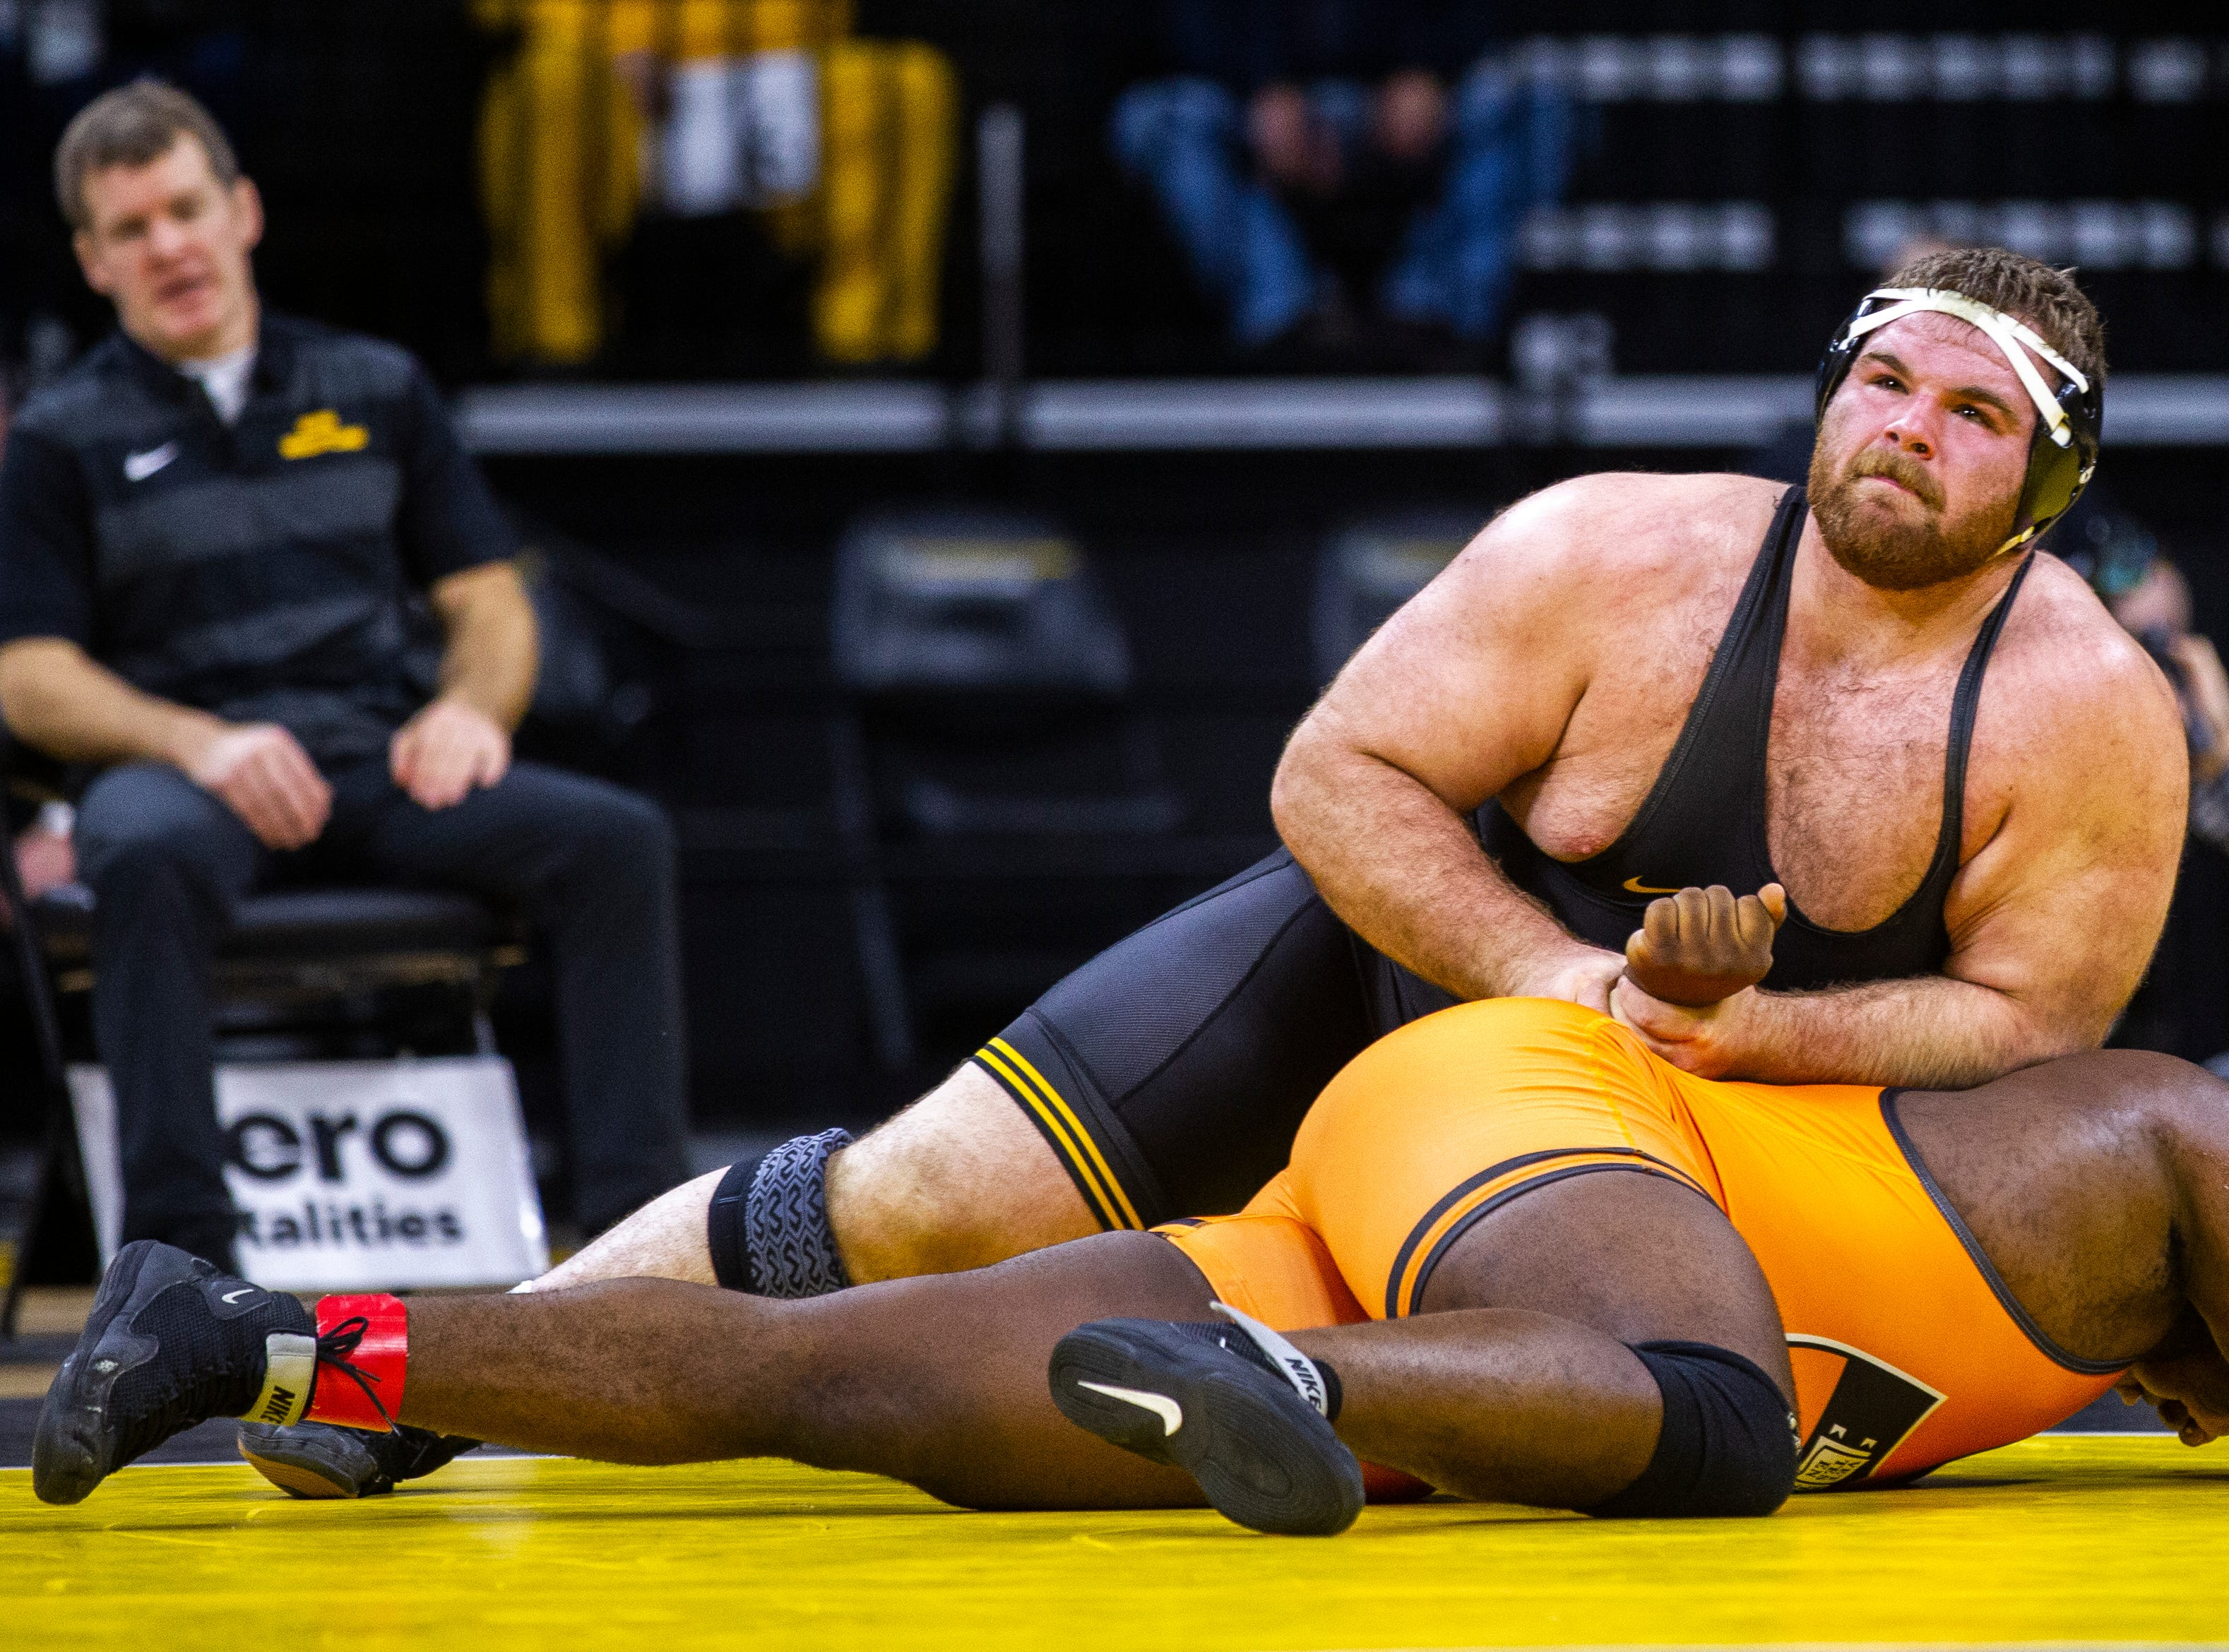 Iowa's Aaron Costello wrestles Princeton's Obinna Ajah at 285 during an NCAA wrestle dual on Friday, Nov. 16, 2018, at Carver-Hawkeye Arena in Iowa City.